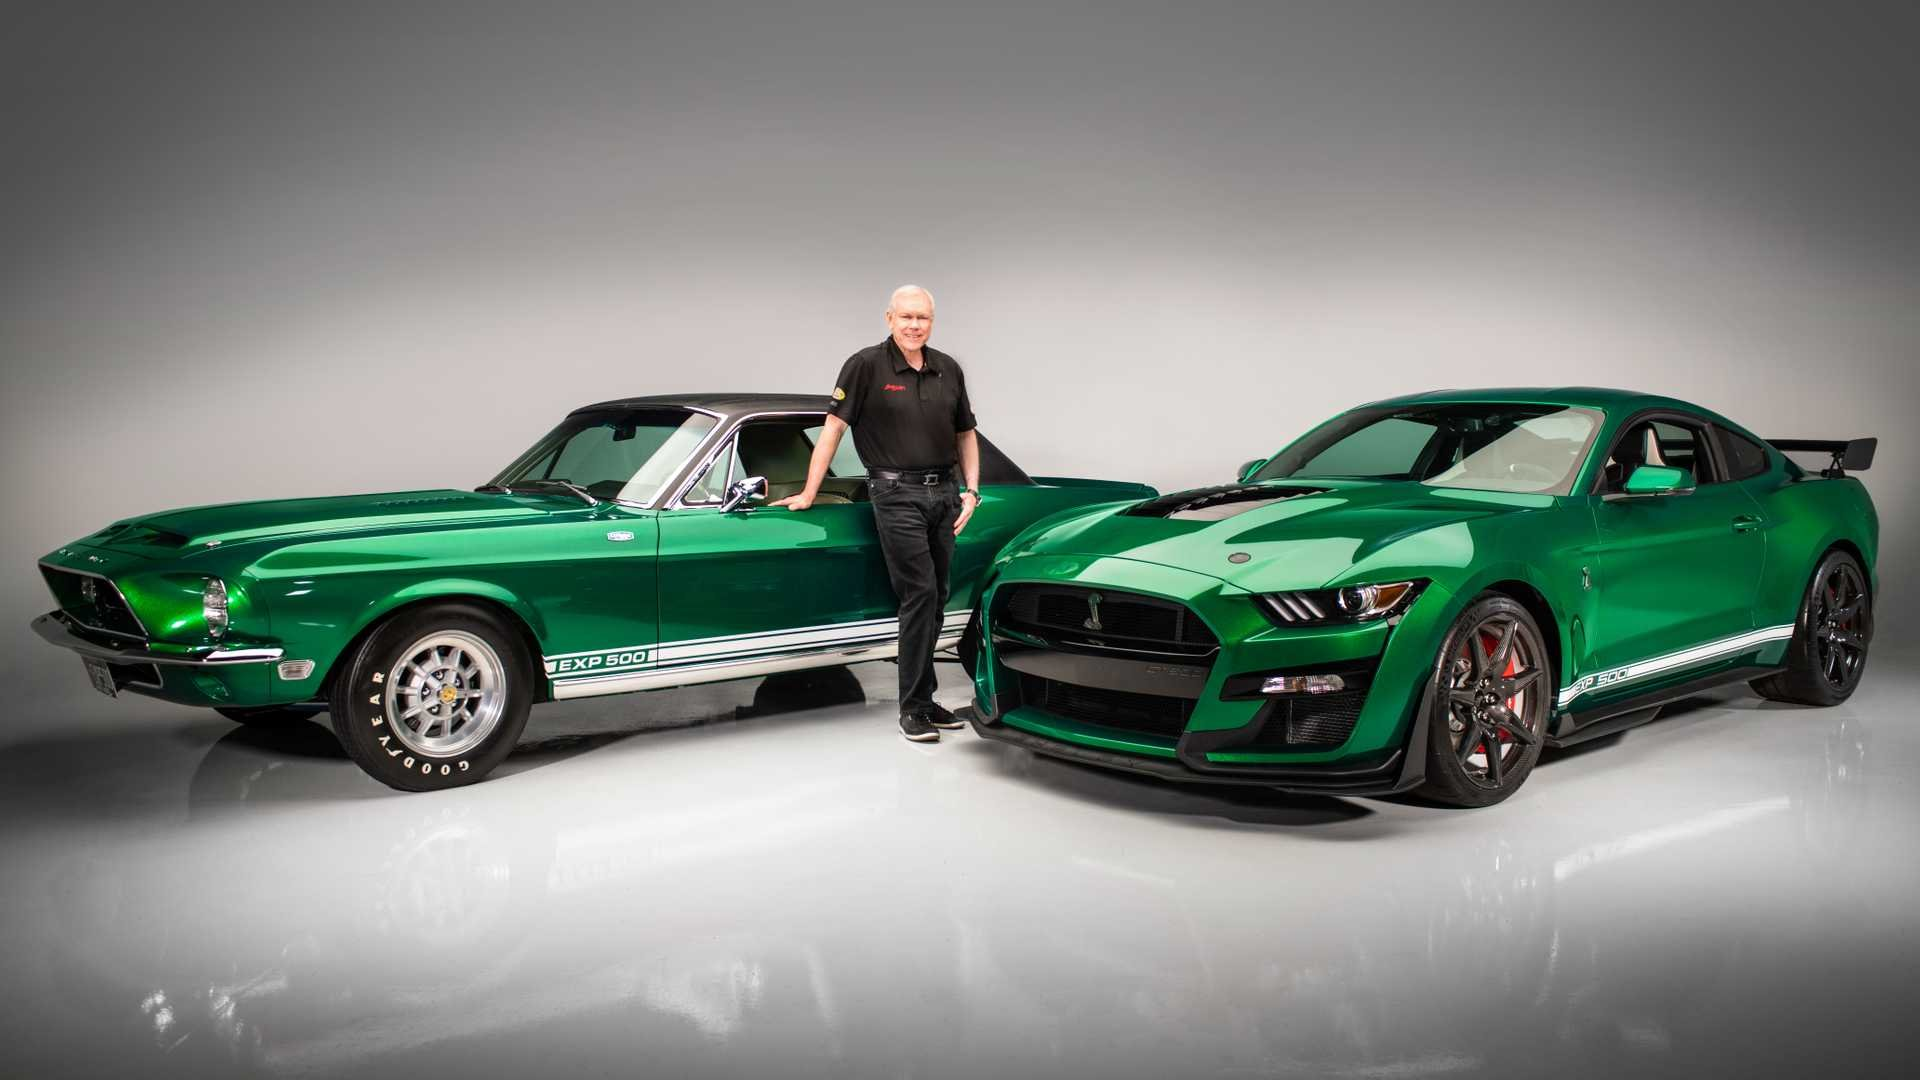 not that green hornet  gt500 vin 001 u2019s paint is inspired by shelby prototype